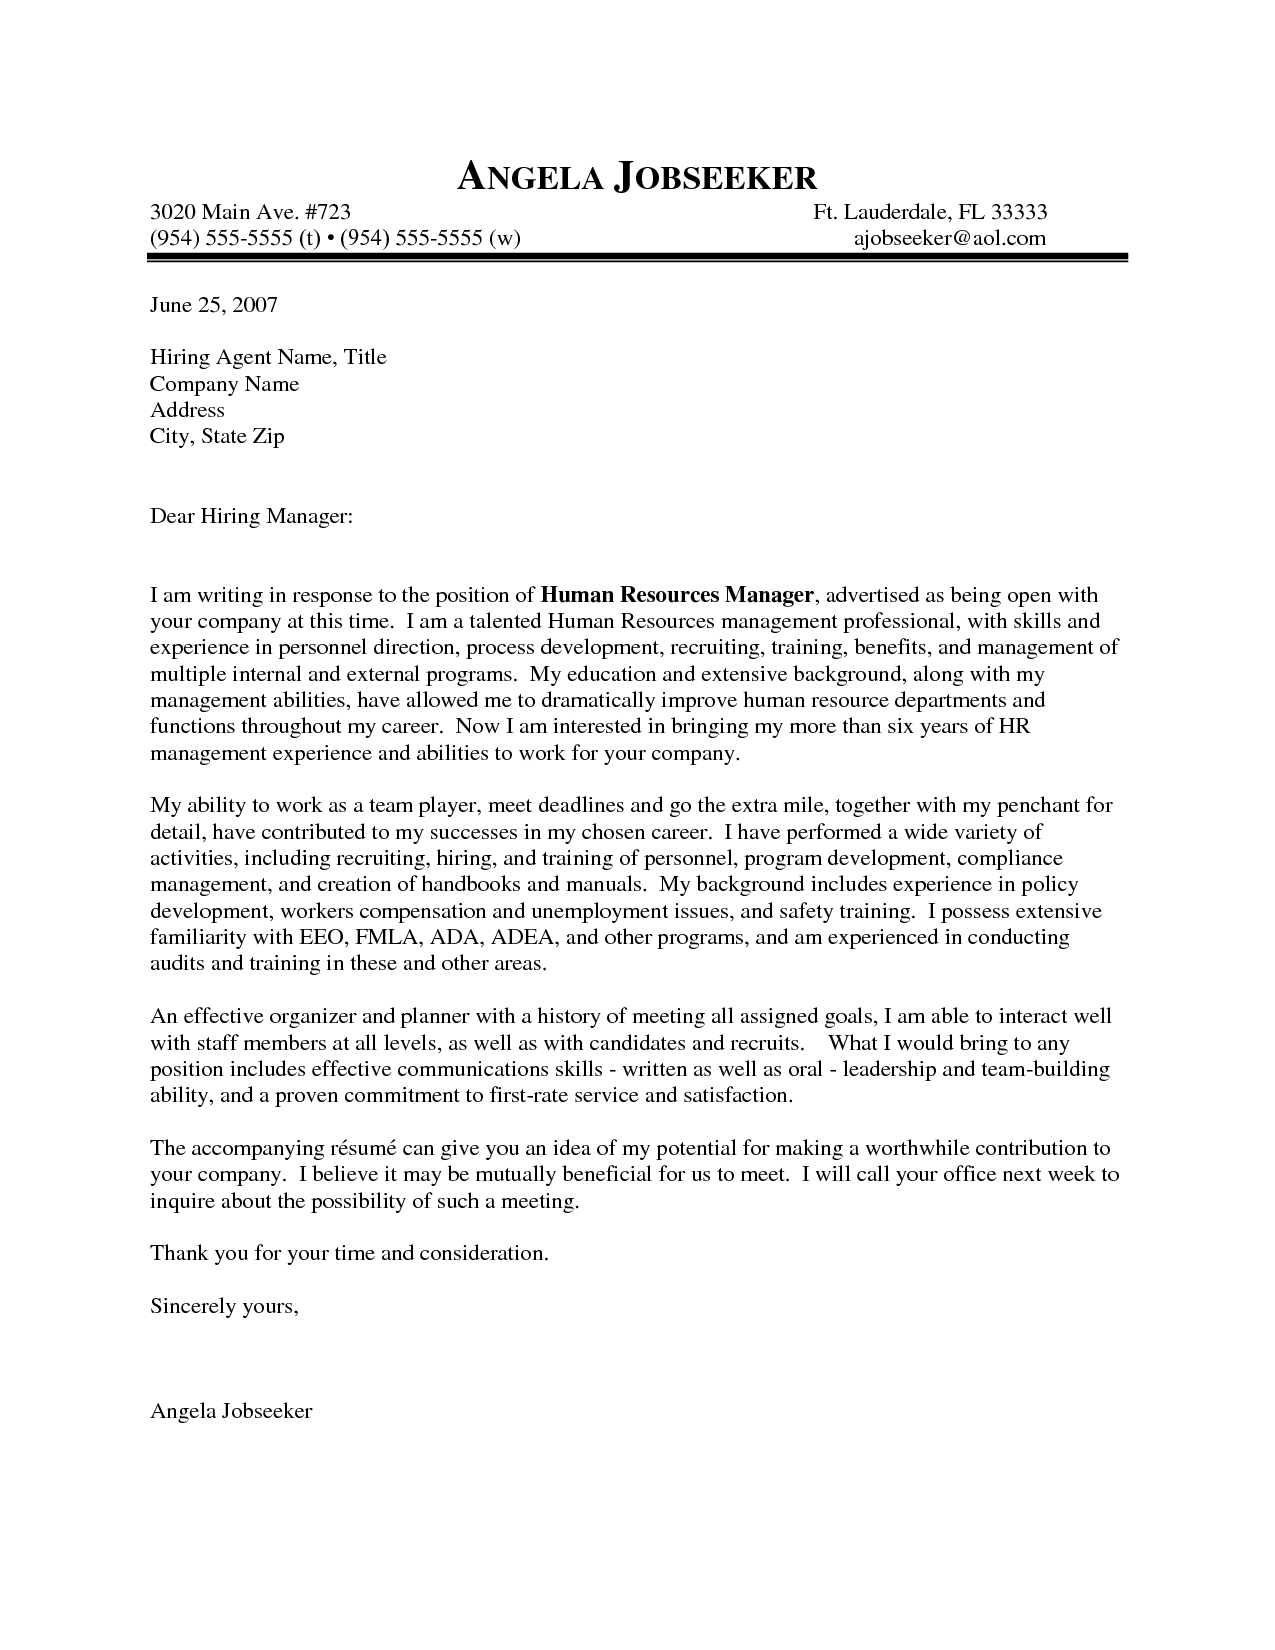 Outstanding Cover Letter Examples | HR Manager Cover Letter Example  Cover Letter Name